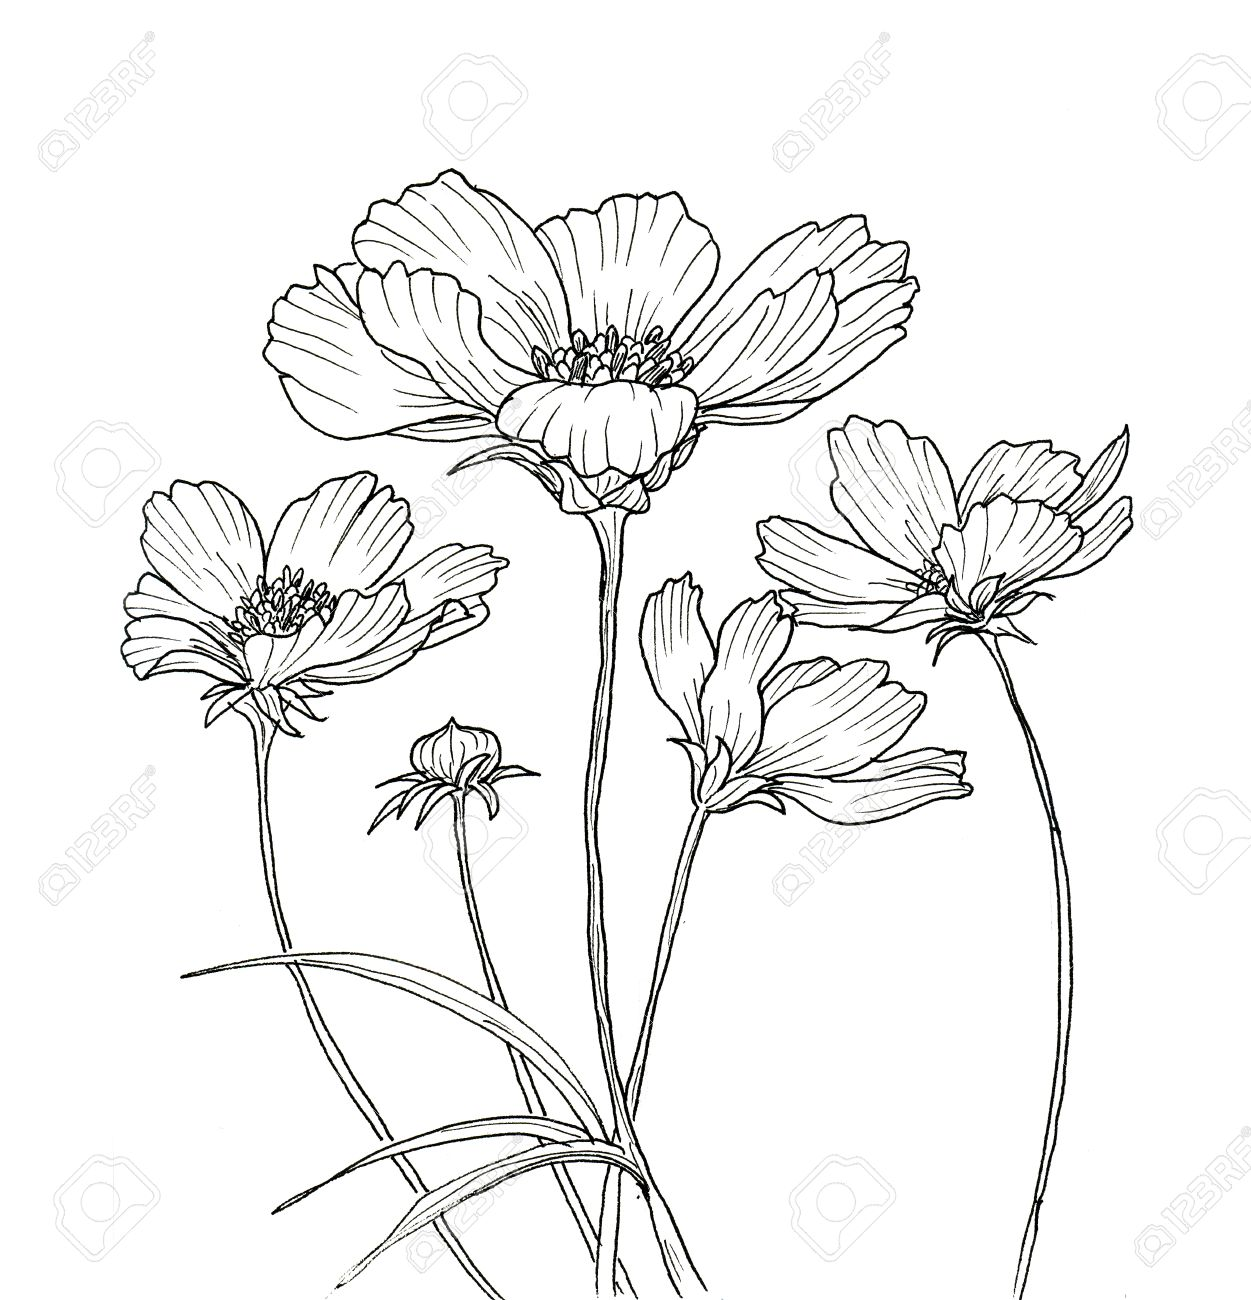 1251x1300 Line Ink Drawing Of Cosmos Flower. Black Contour On White